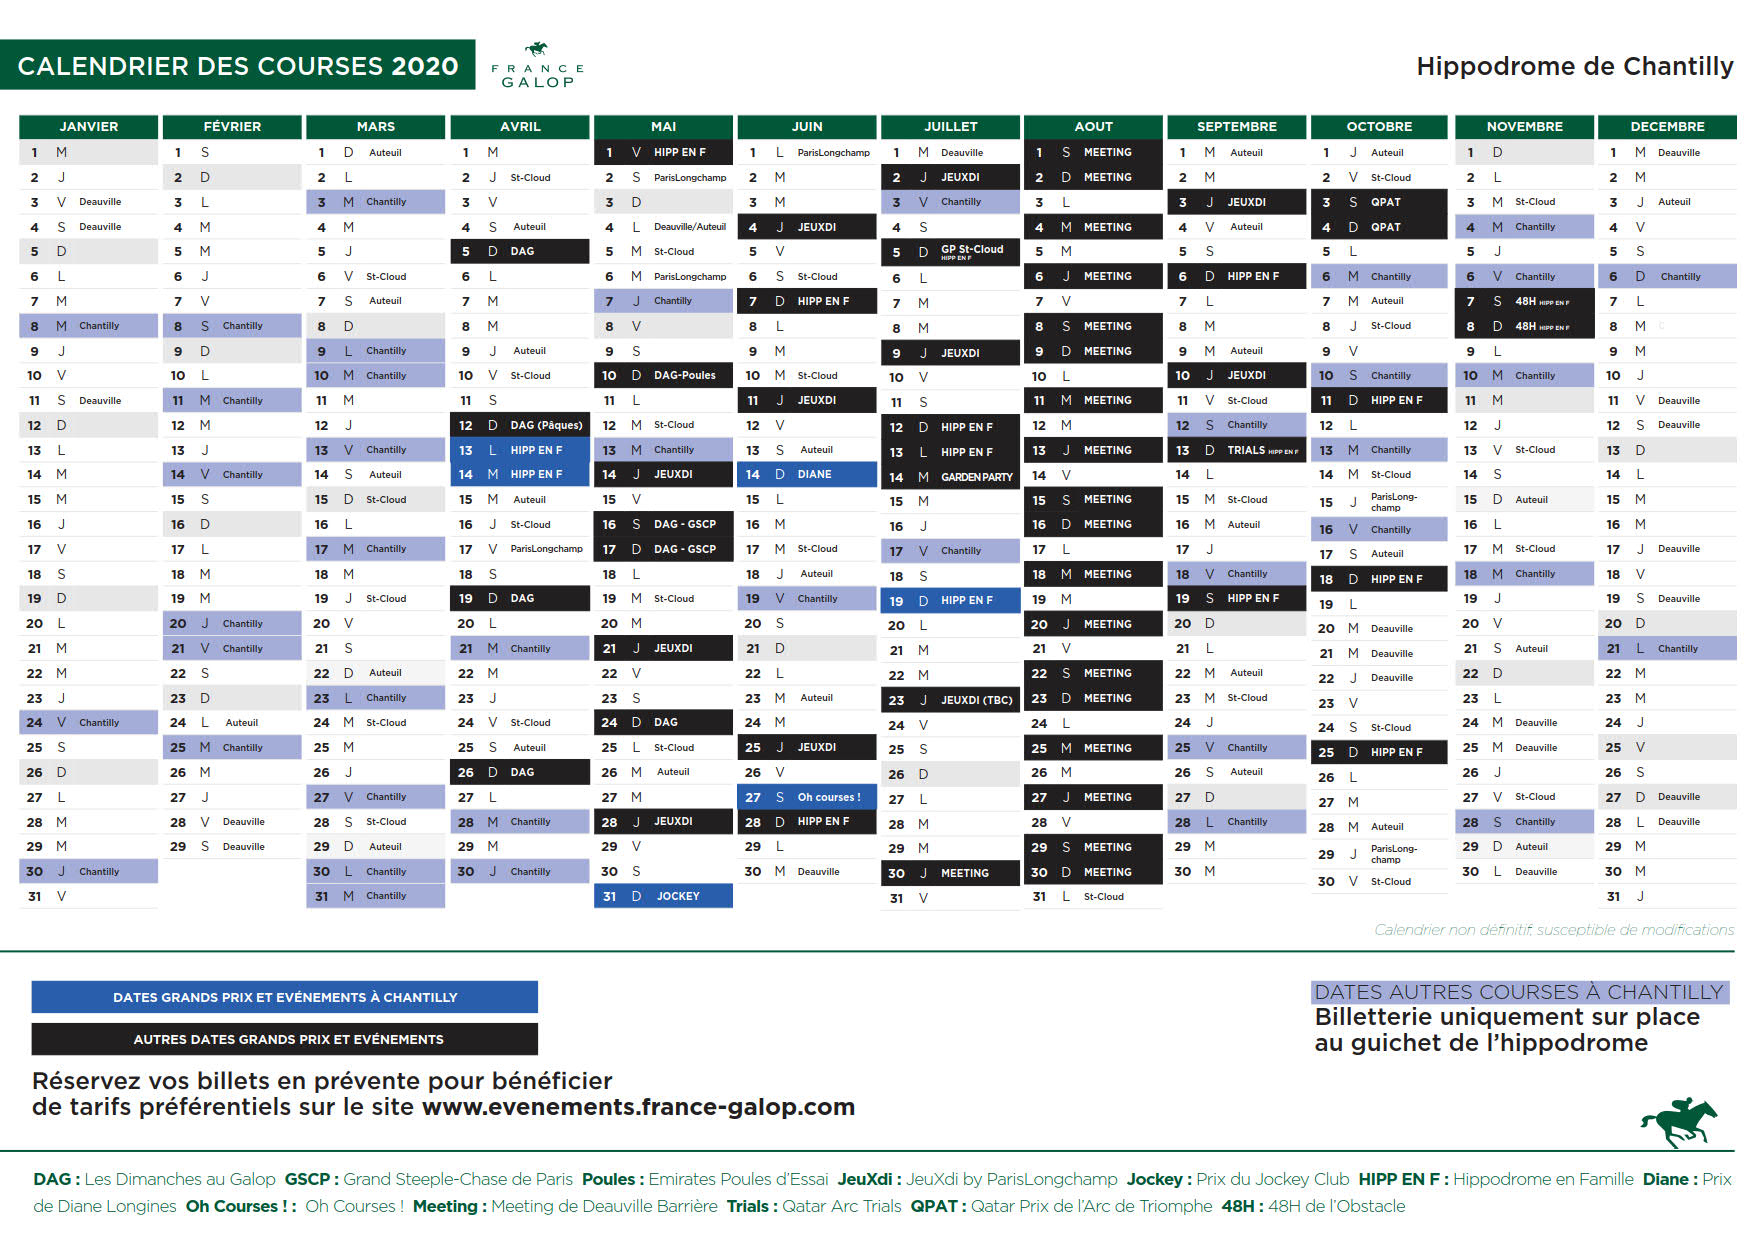 CALENDRIER_EXPERIENCE_CHANTILLY_VDEF_1.jpg